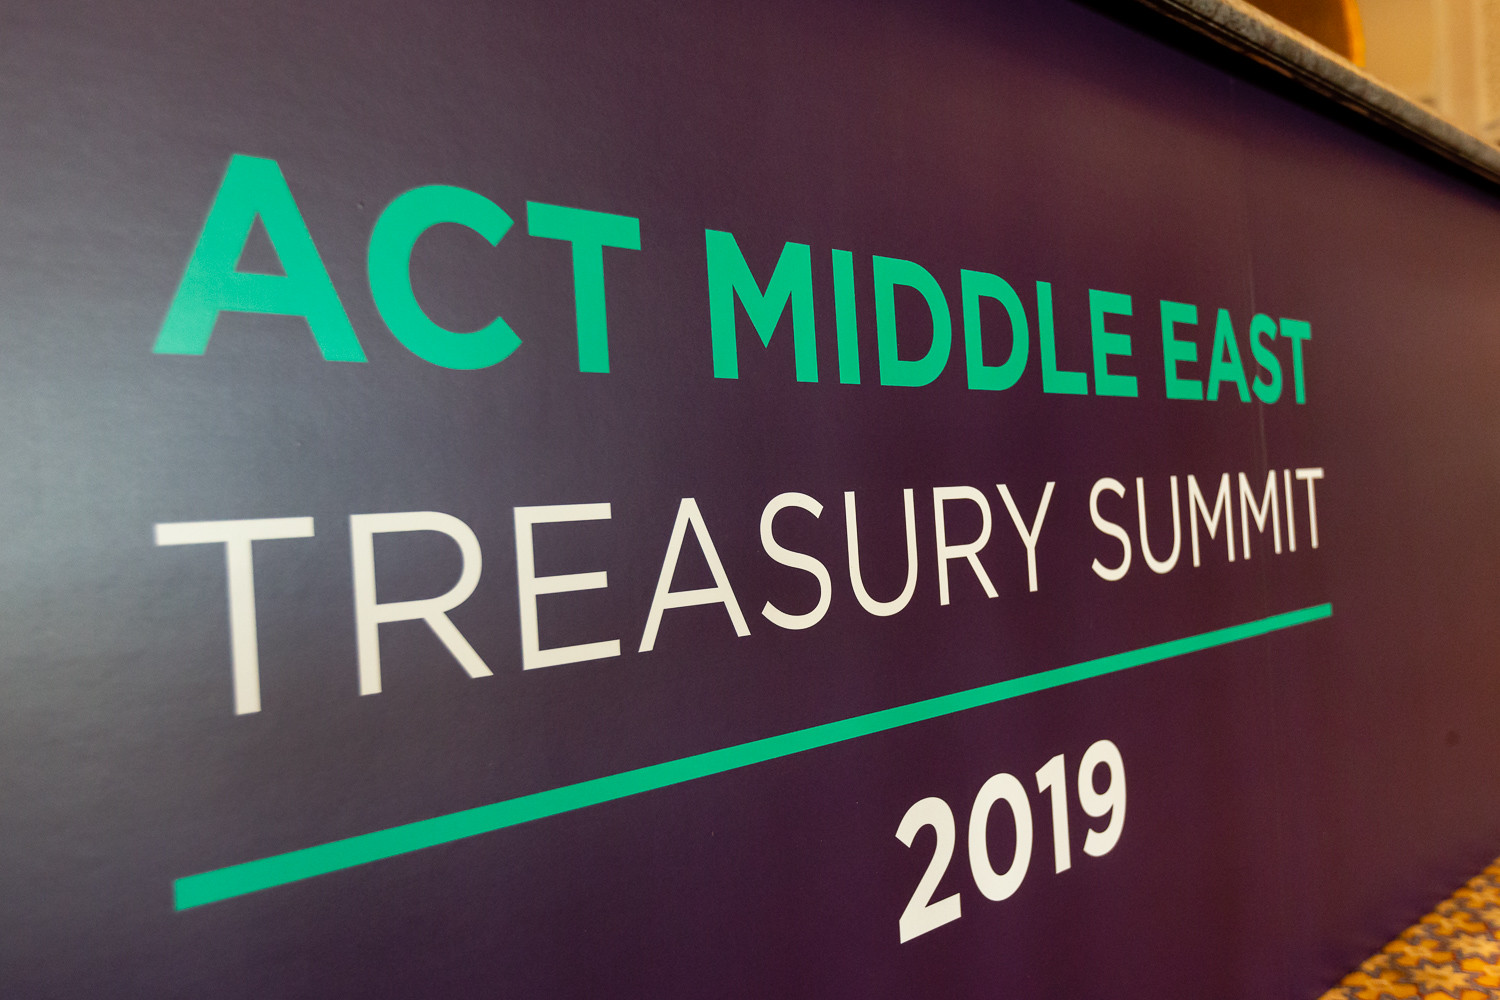 ACT Middle East Treasury Summit 2019